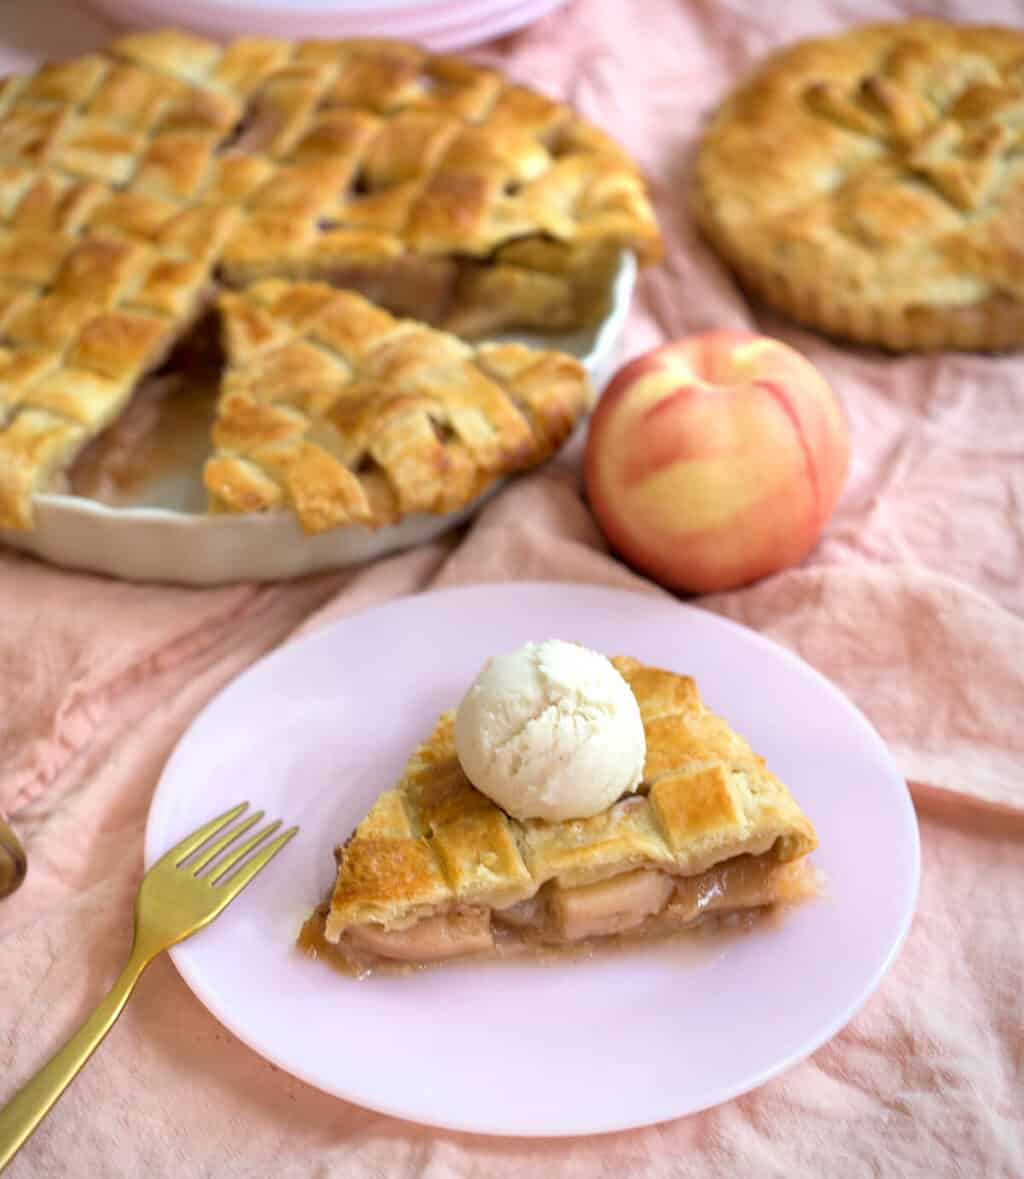 A photo of a piece of peach pie on a plate topped with a scoop of ice cream.